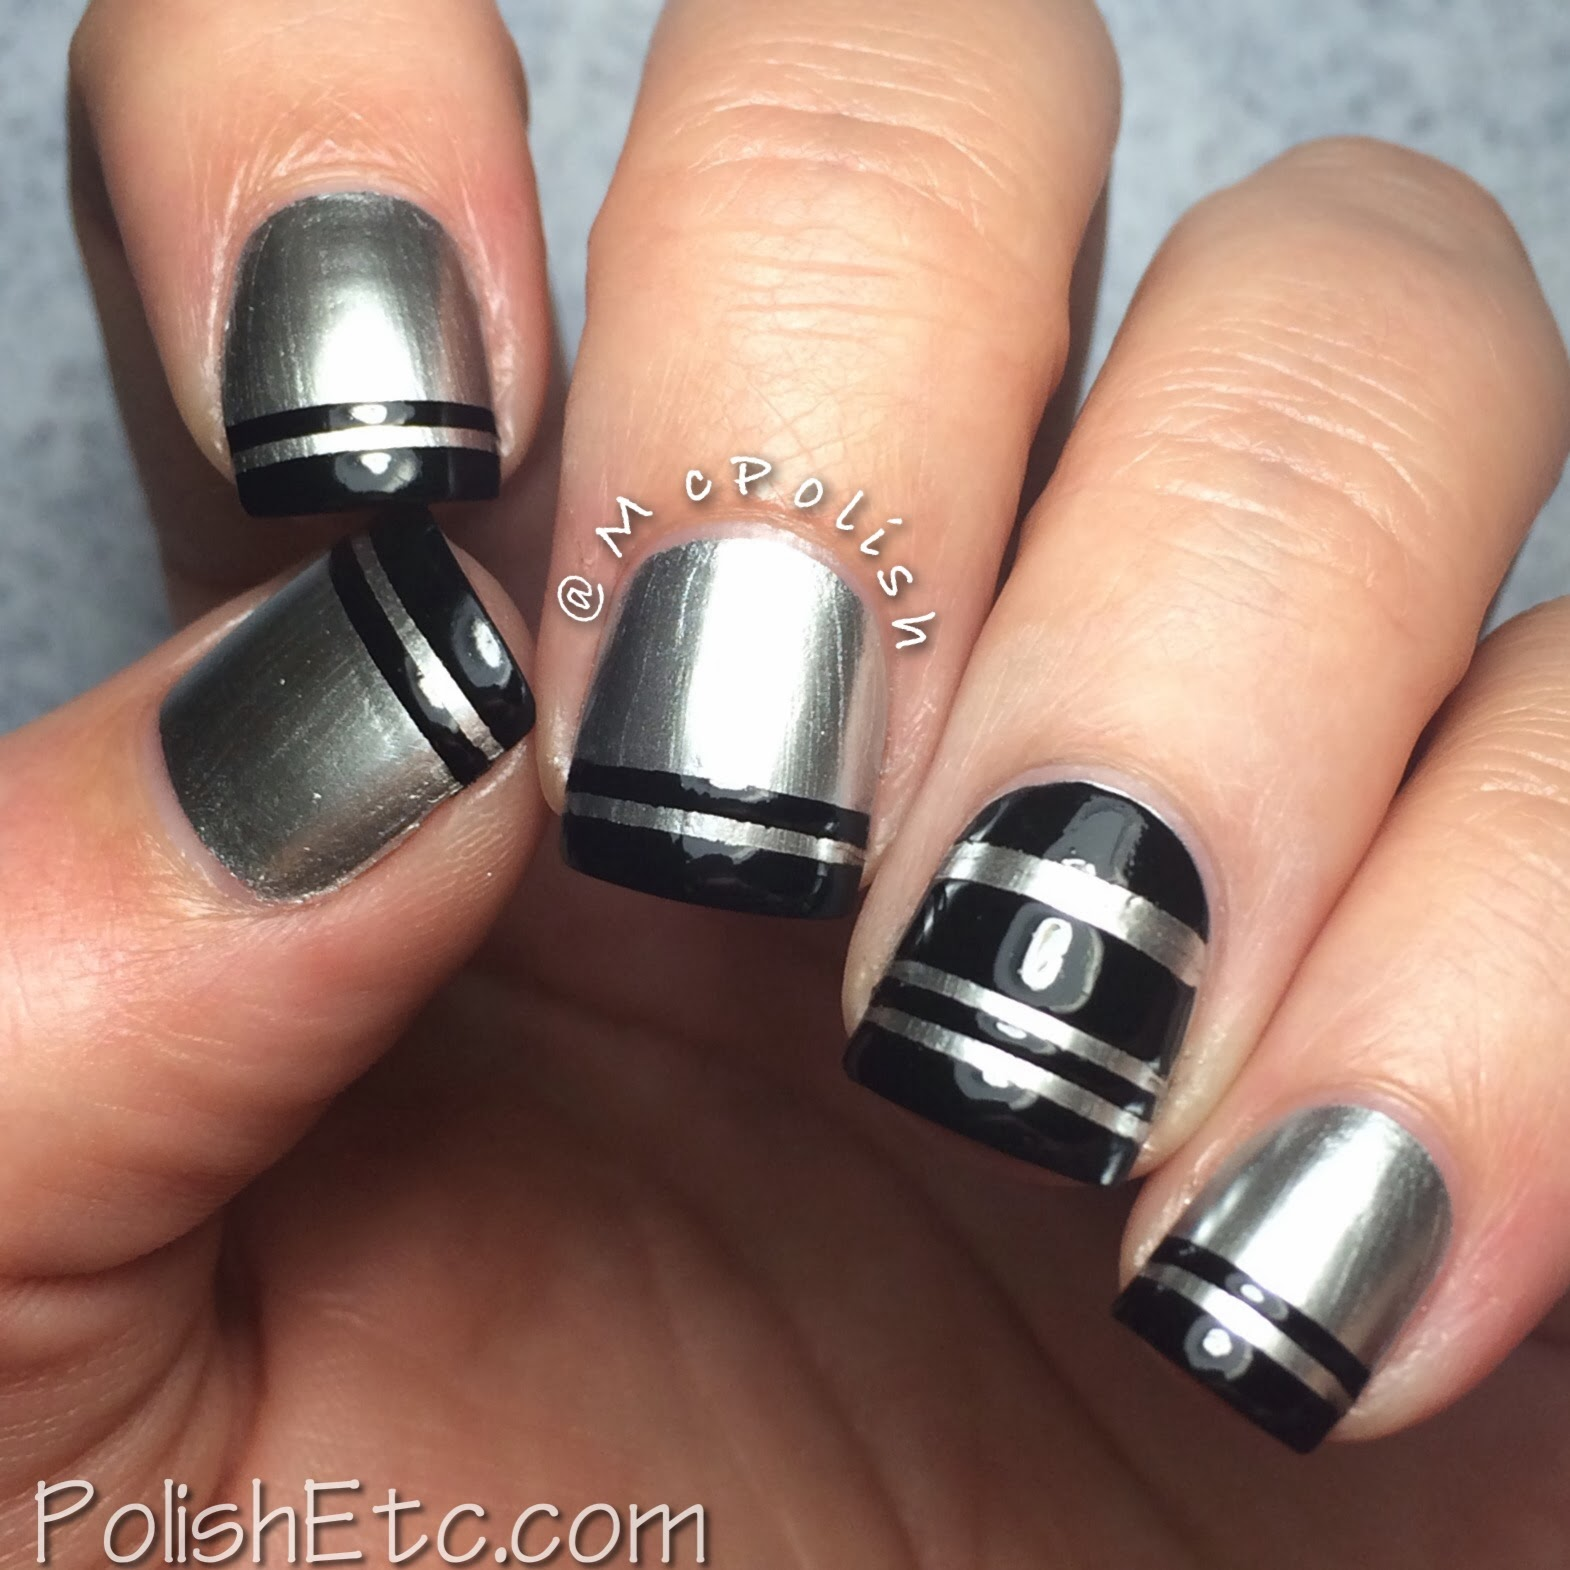 OPI Push and Shove striped mani